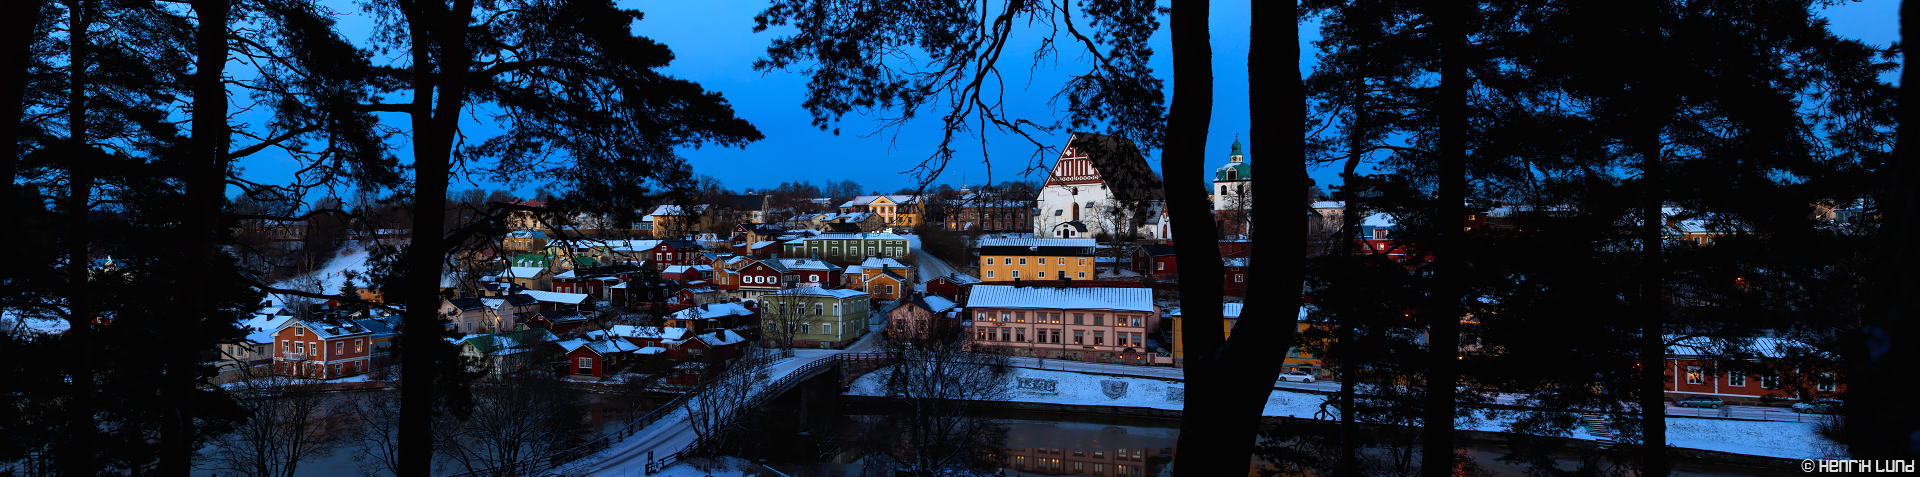 Snowroofs over old town in Porvoo, Finland. November 2016.